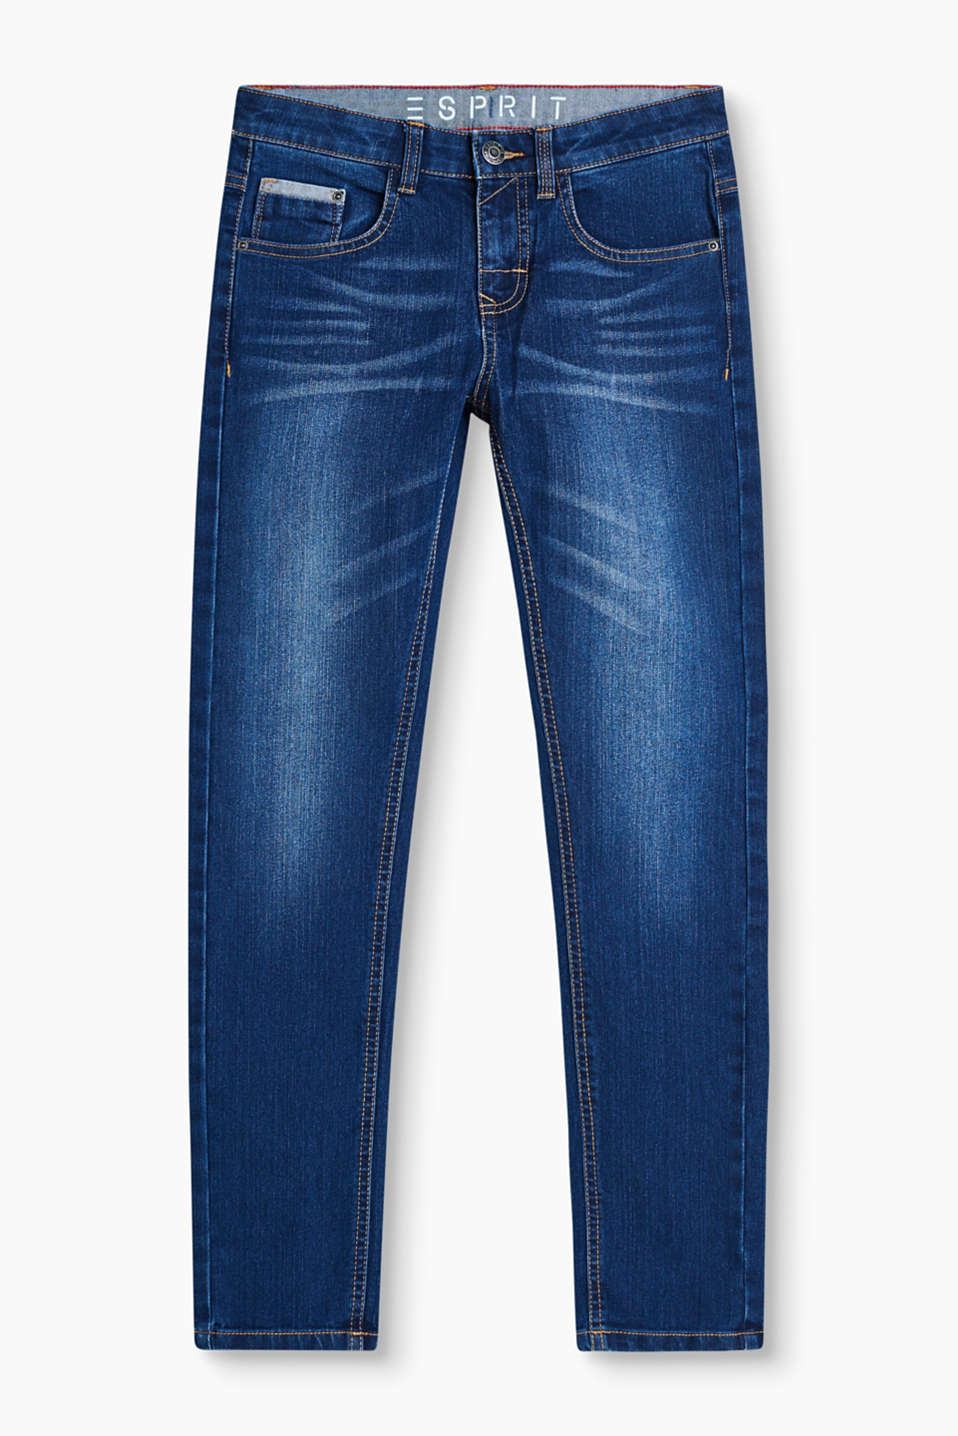 Five-pocket jeans in blended cotton denim with authentic washed effects